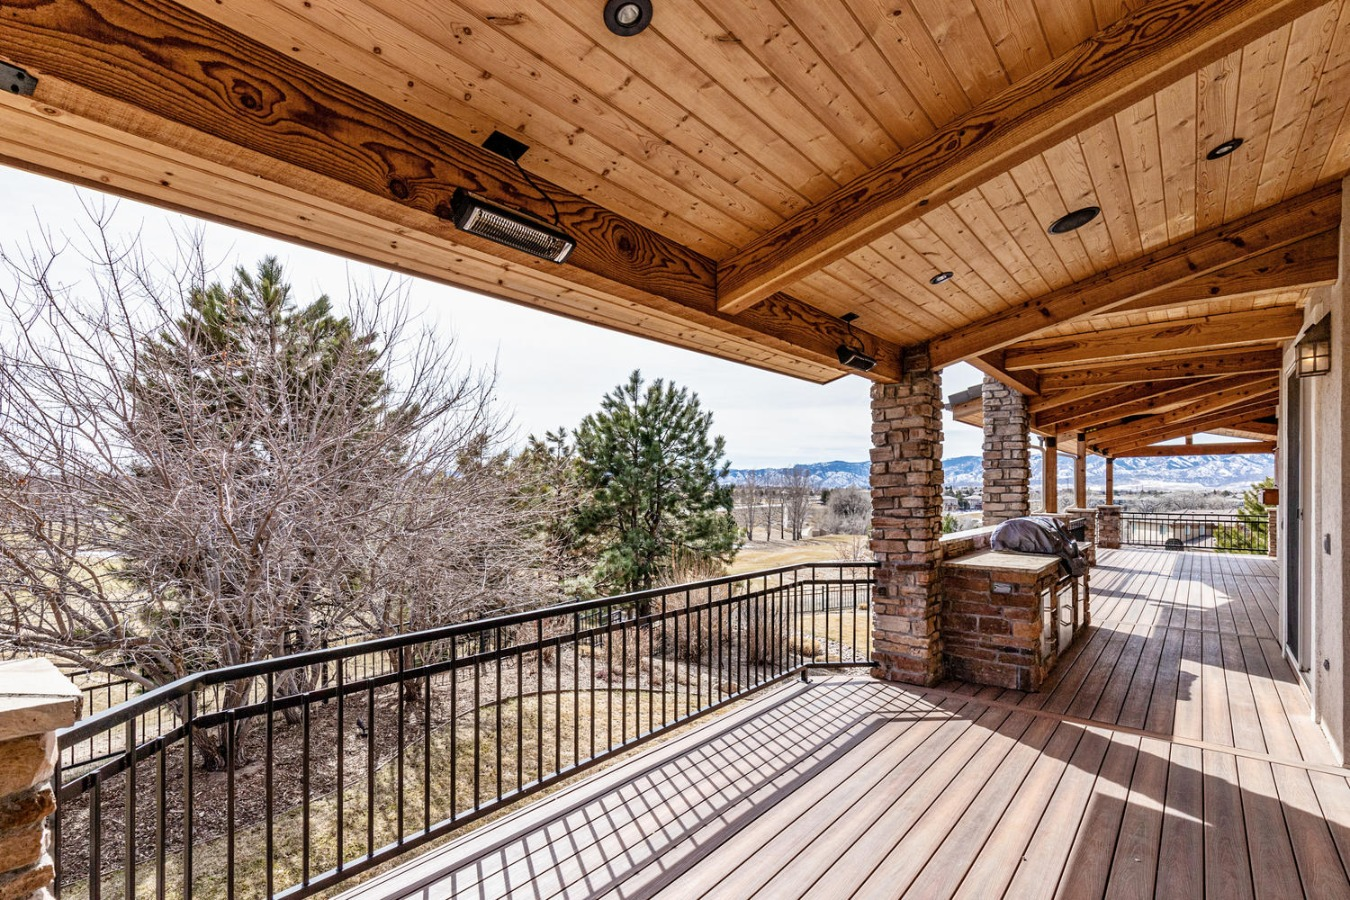 Covered main floor deck